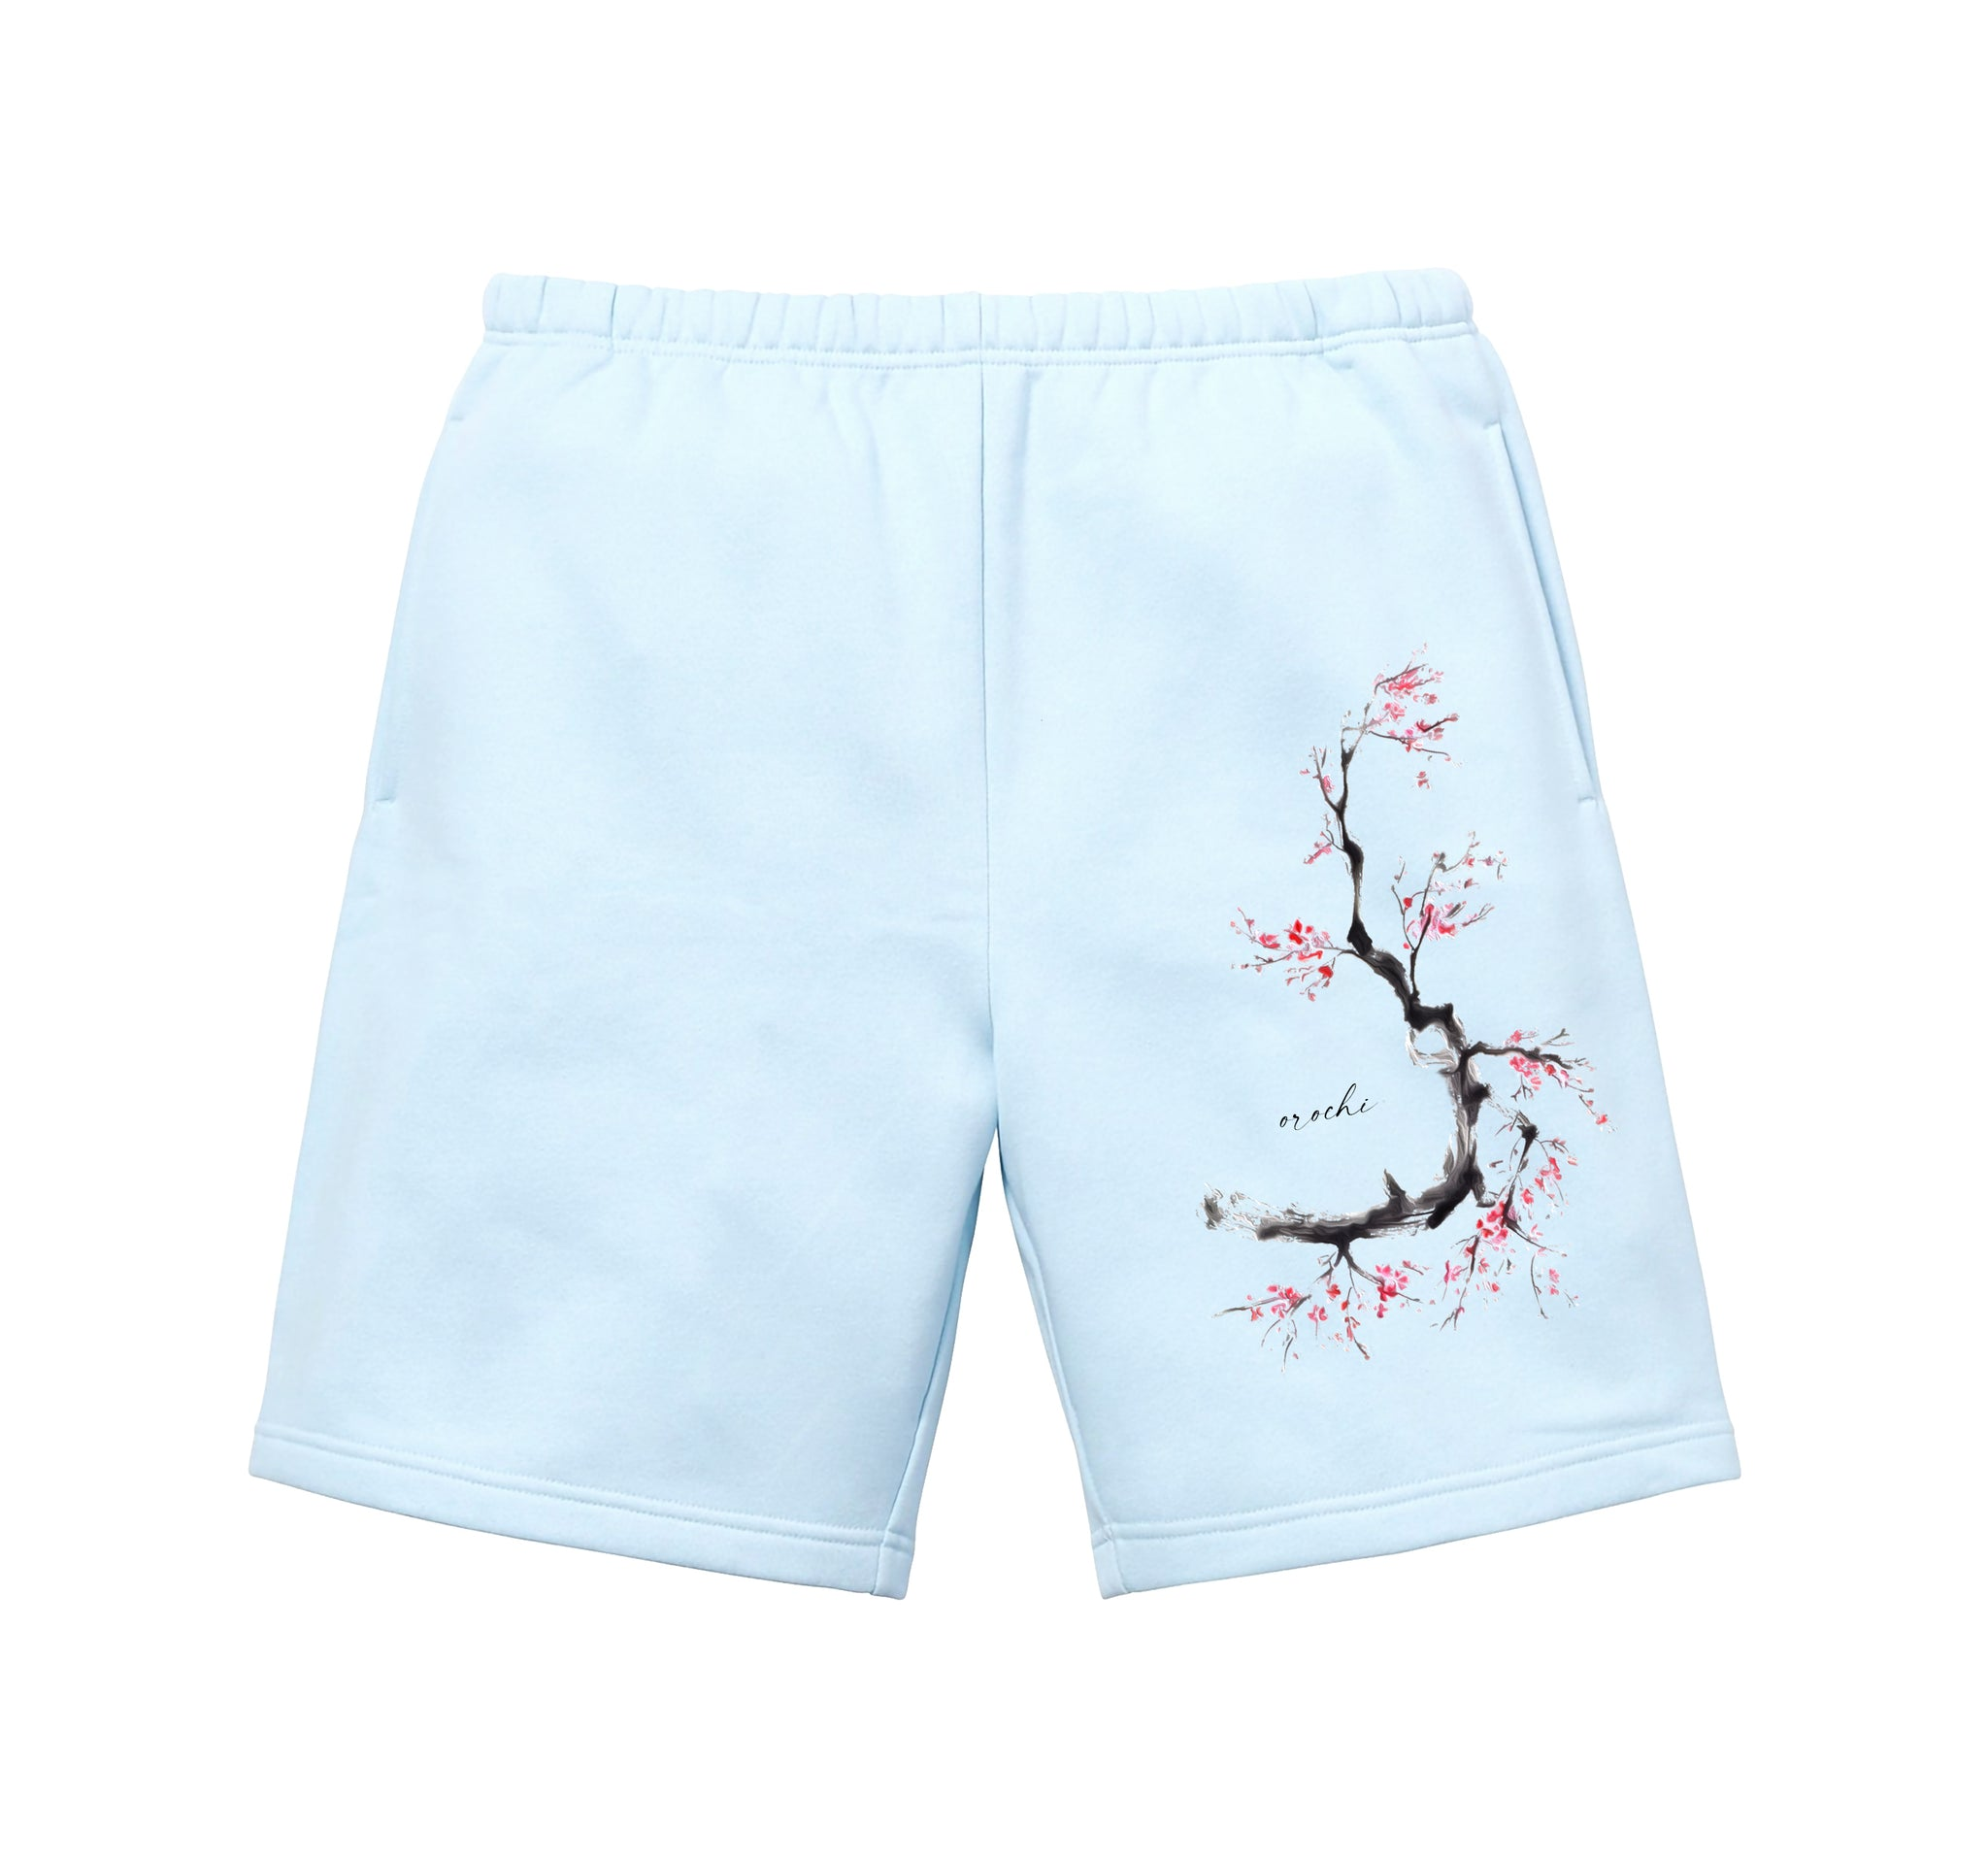 Sakura Shorts - Light Blue